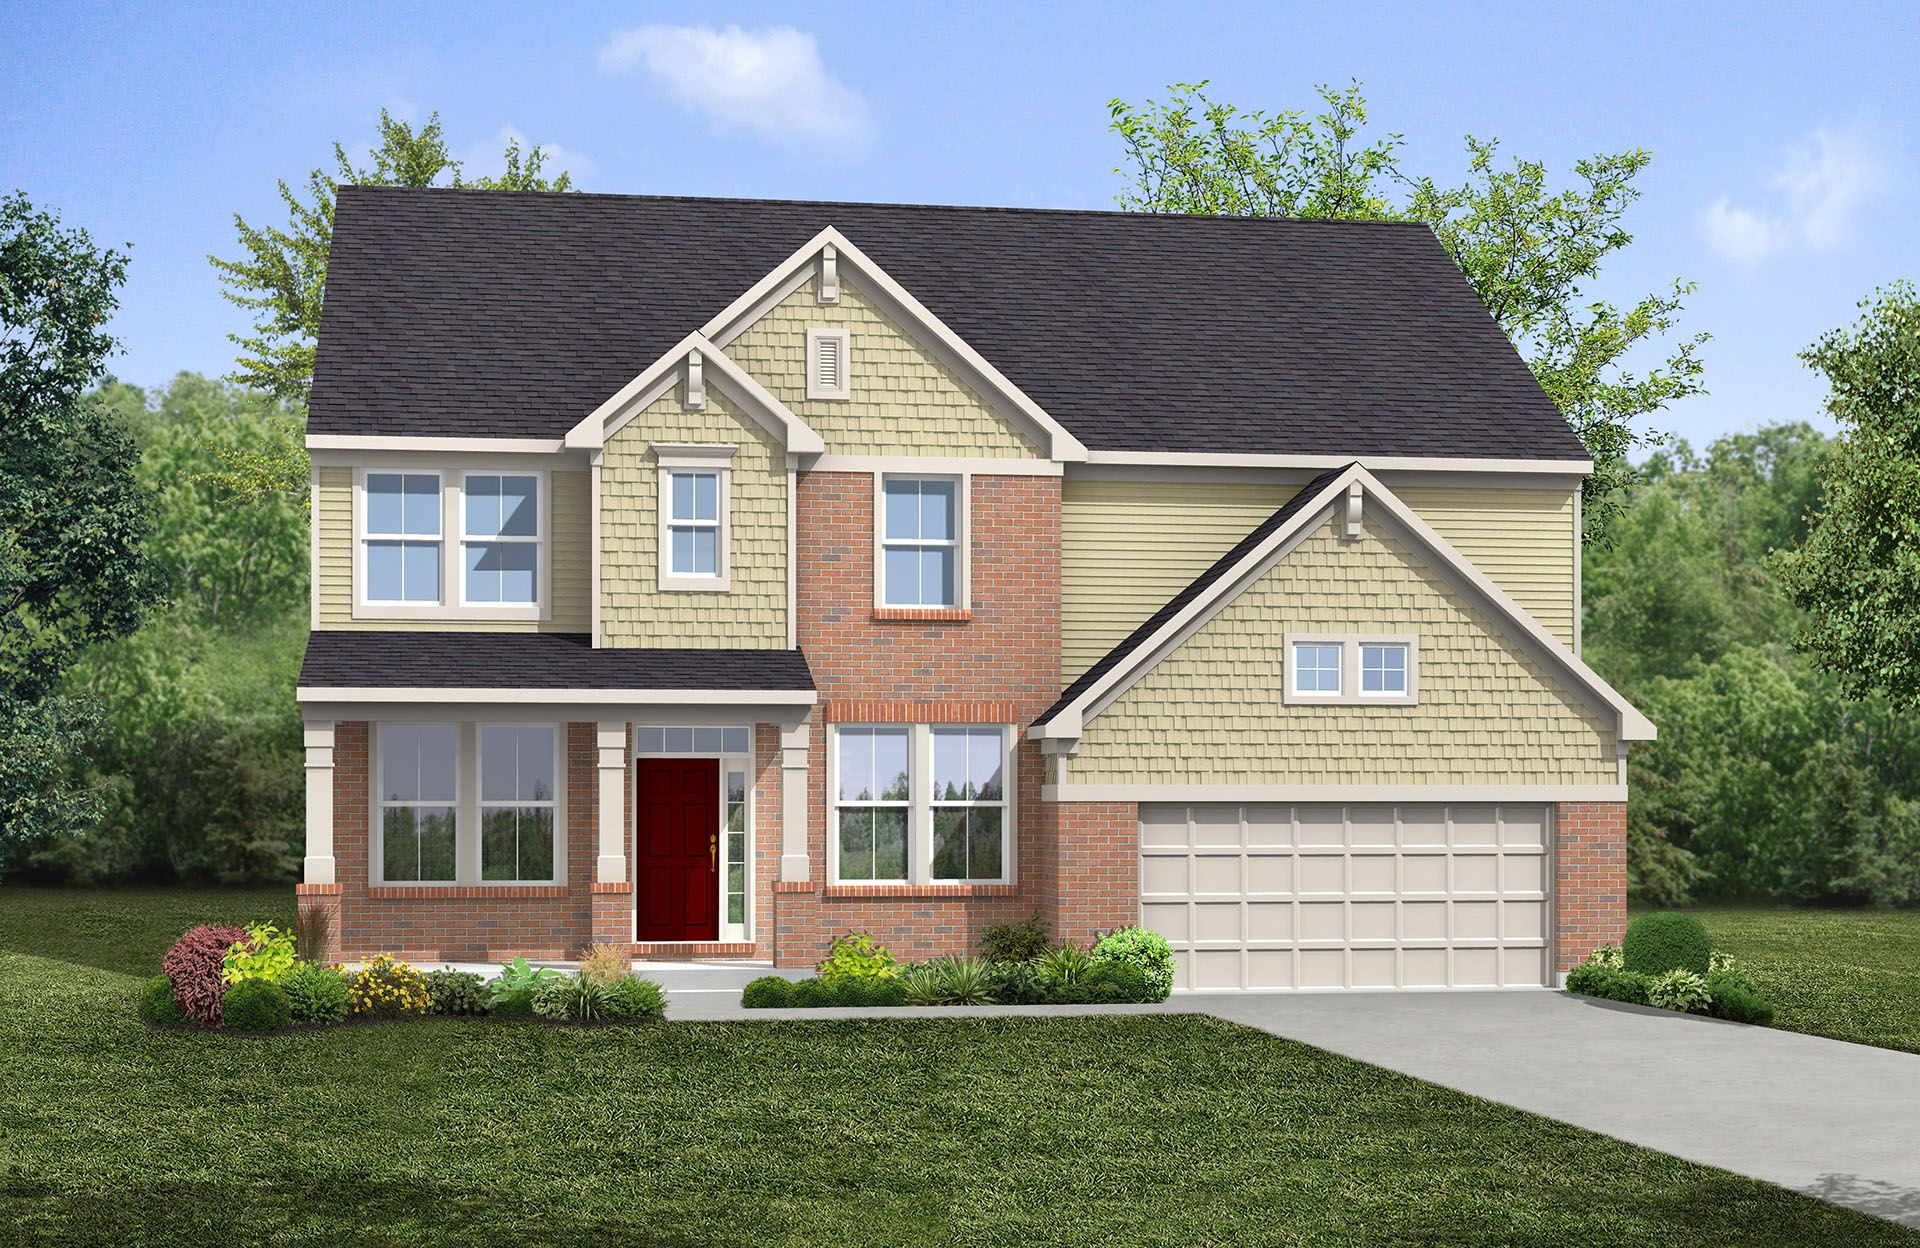 Single Family for Active at Tallyn Ridge Estates - Buchanan 8395 Pine Bluff Road Frederick, Maryland 21704 United States